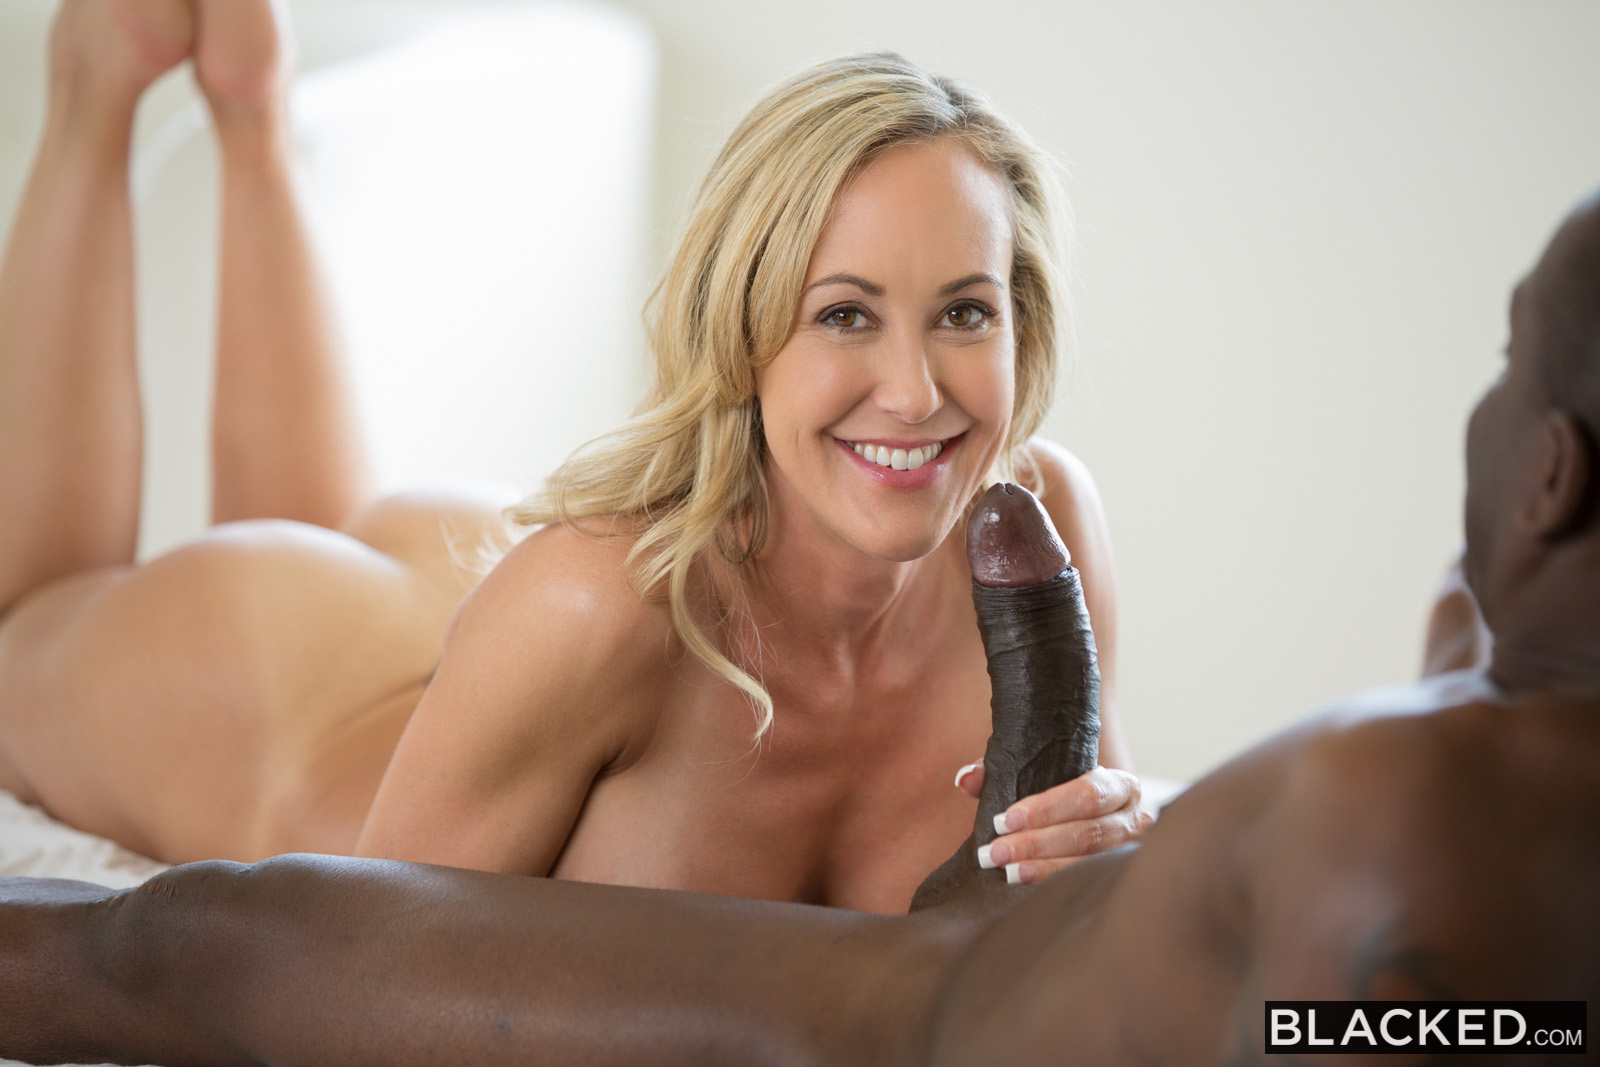 For the Brandi love black cock